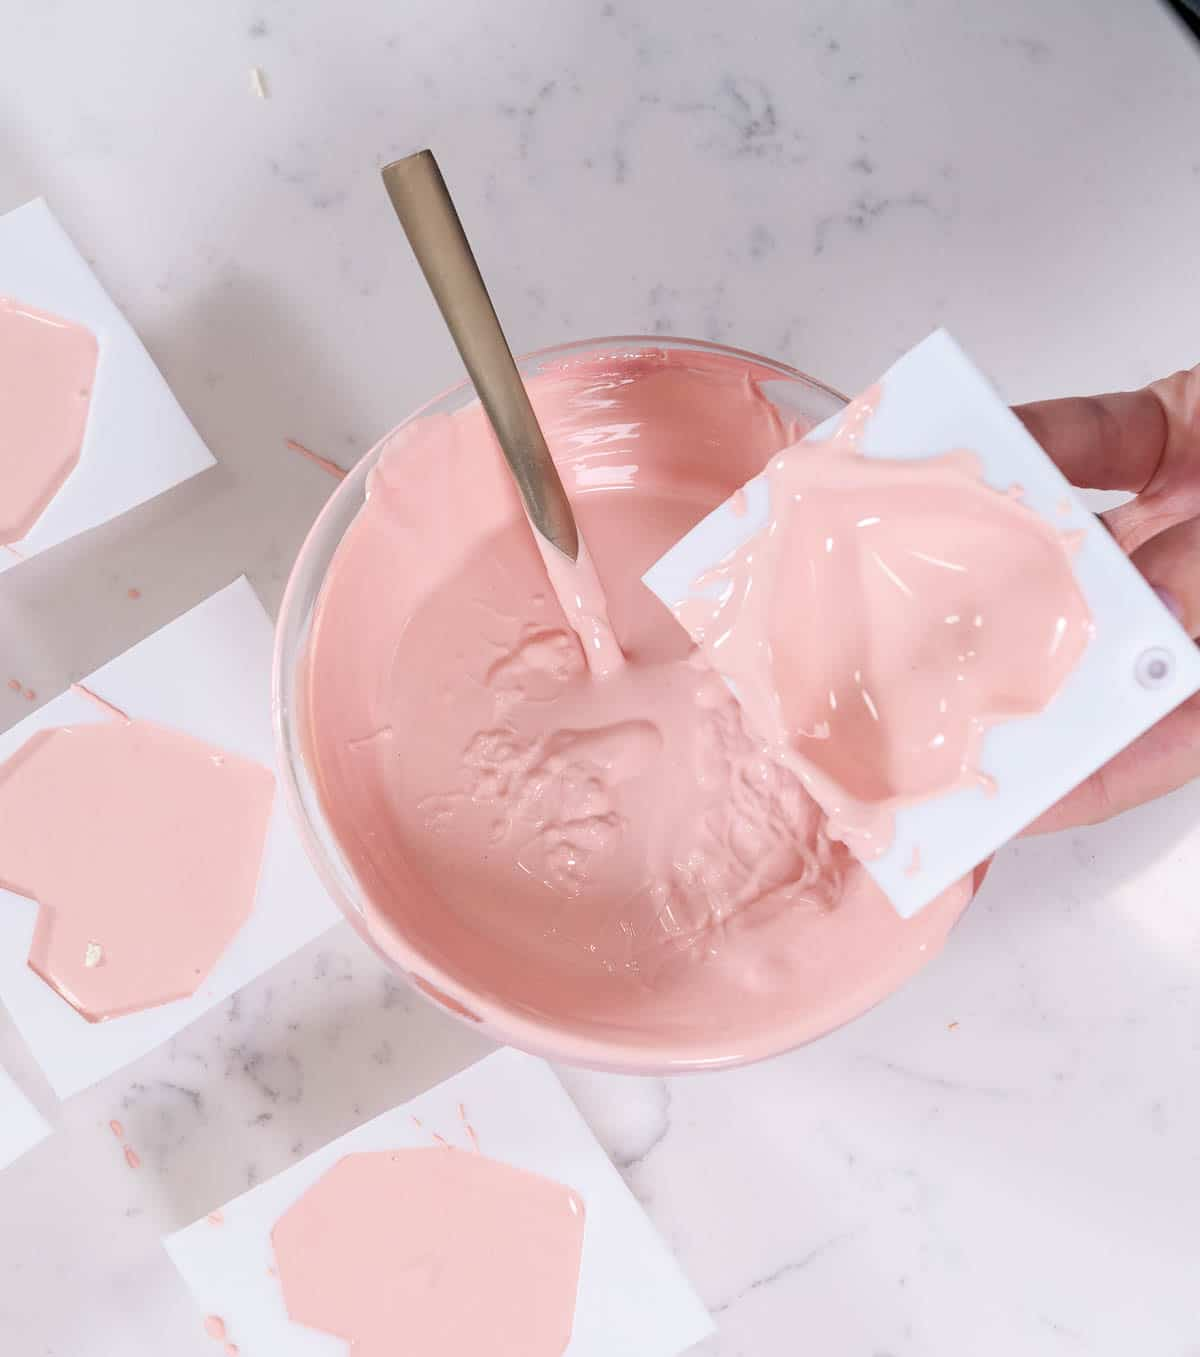 emptying heart hot chocolate molds over a pink bowl